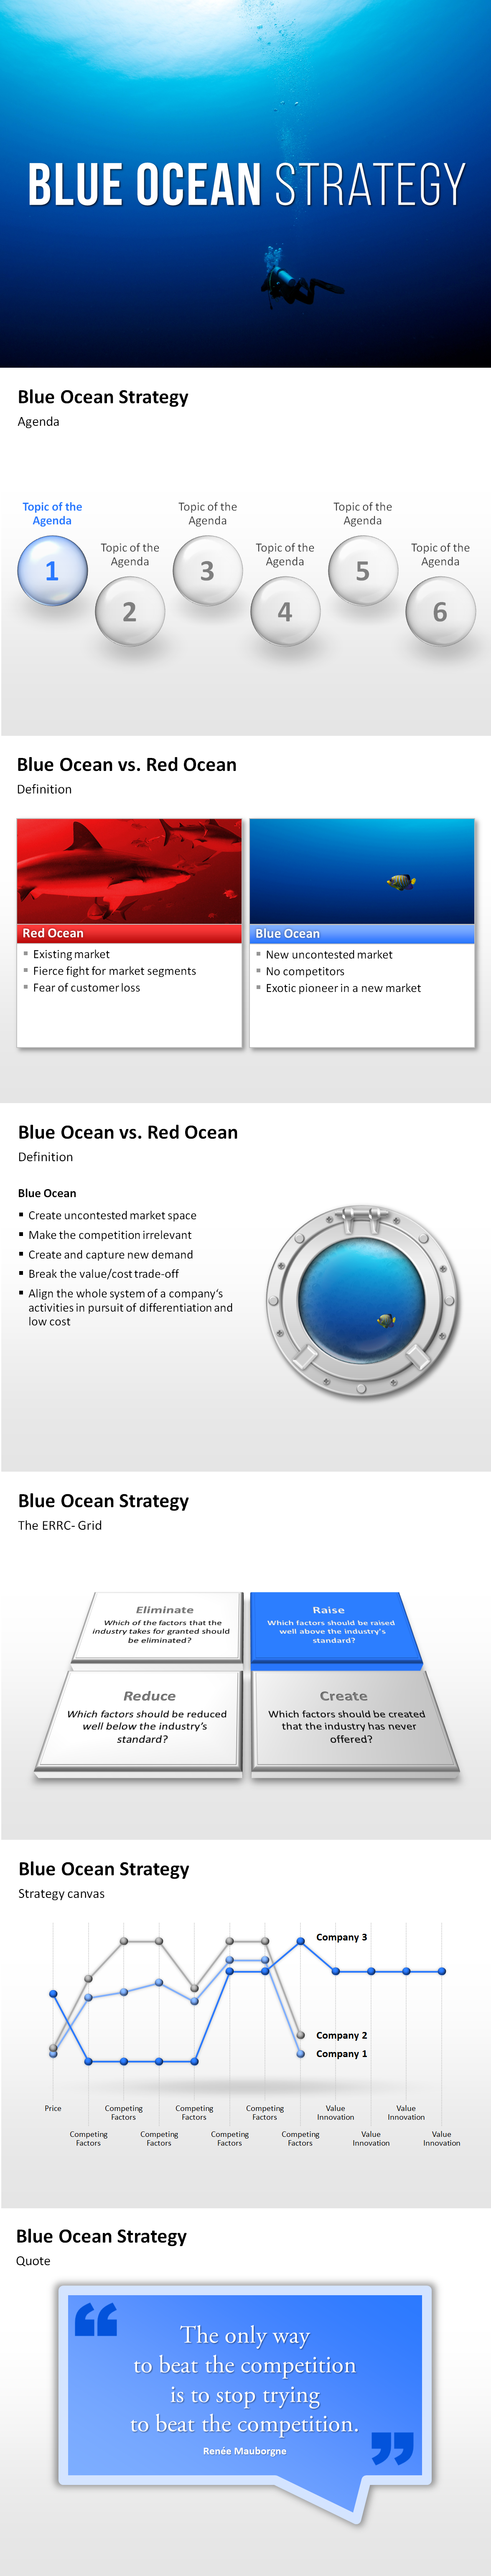 Blue Ocean Strategy Template For Powerpoint For The Professional